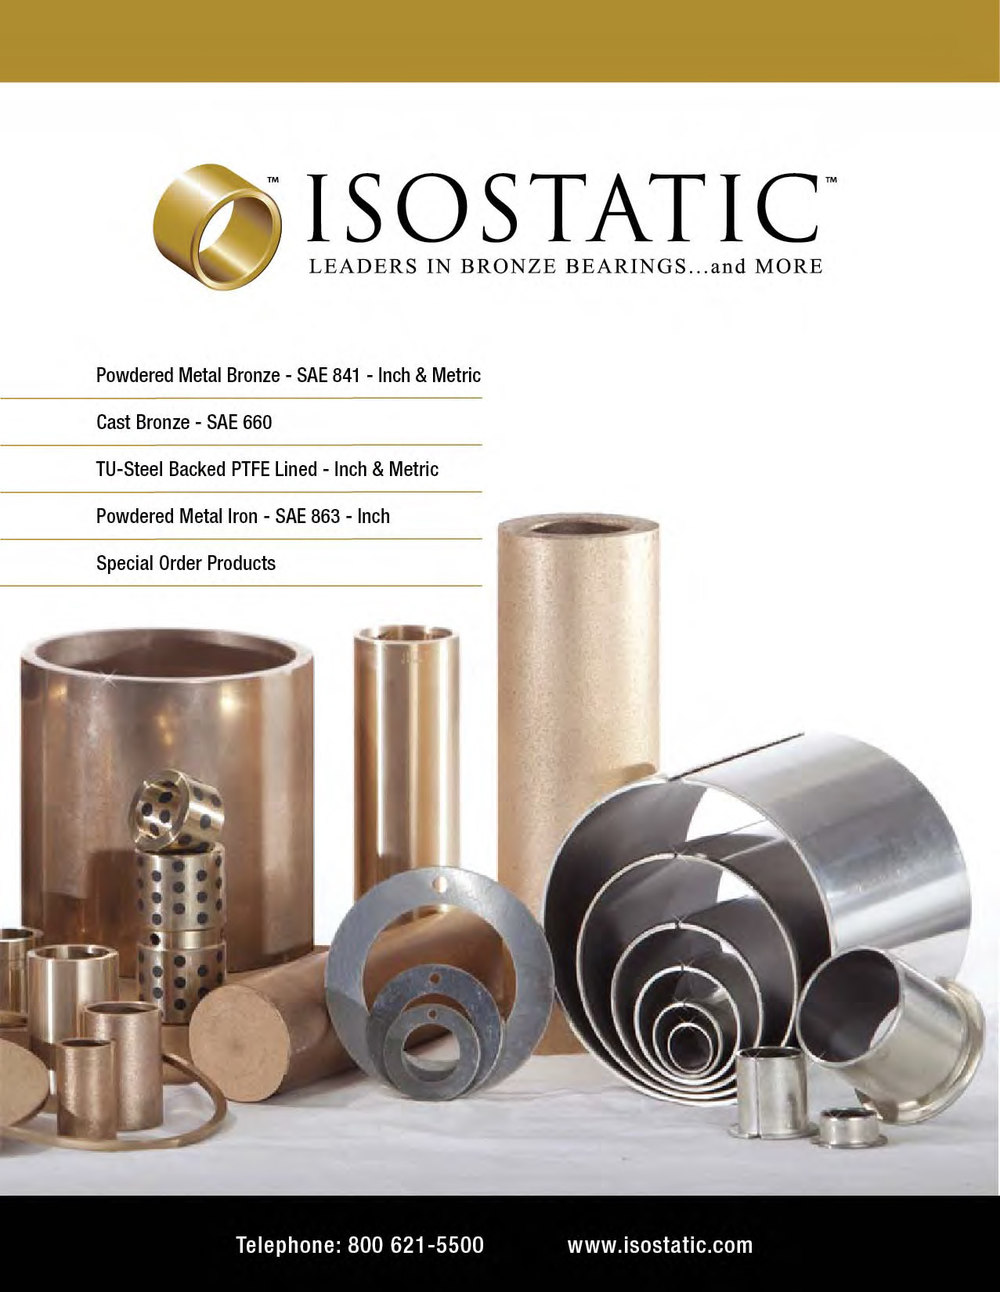 Isostatic Bronze Products